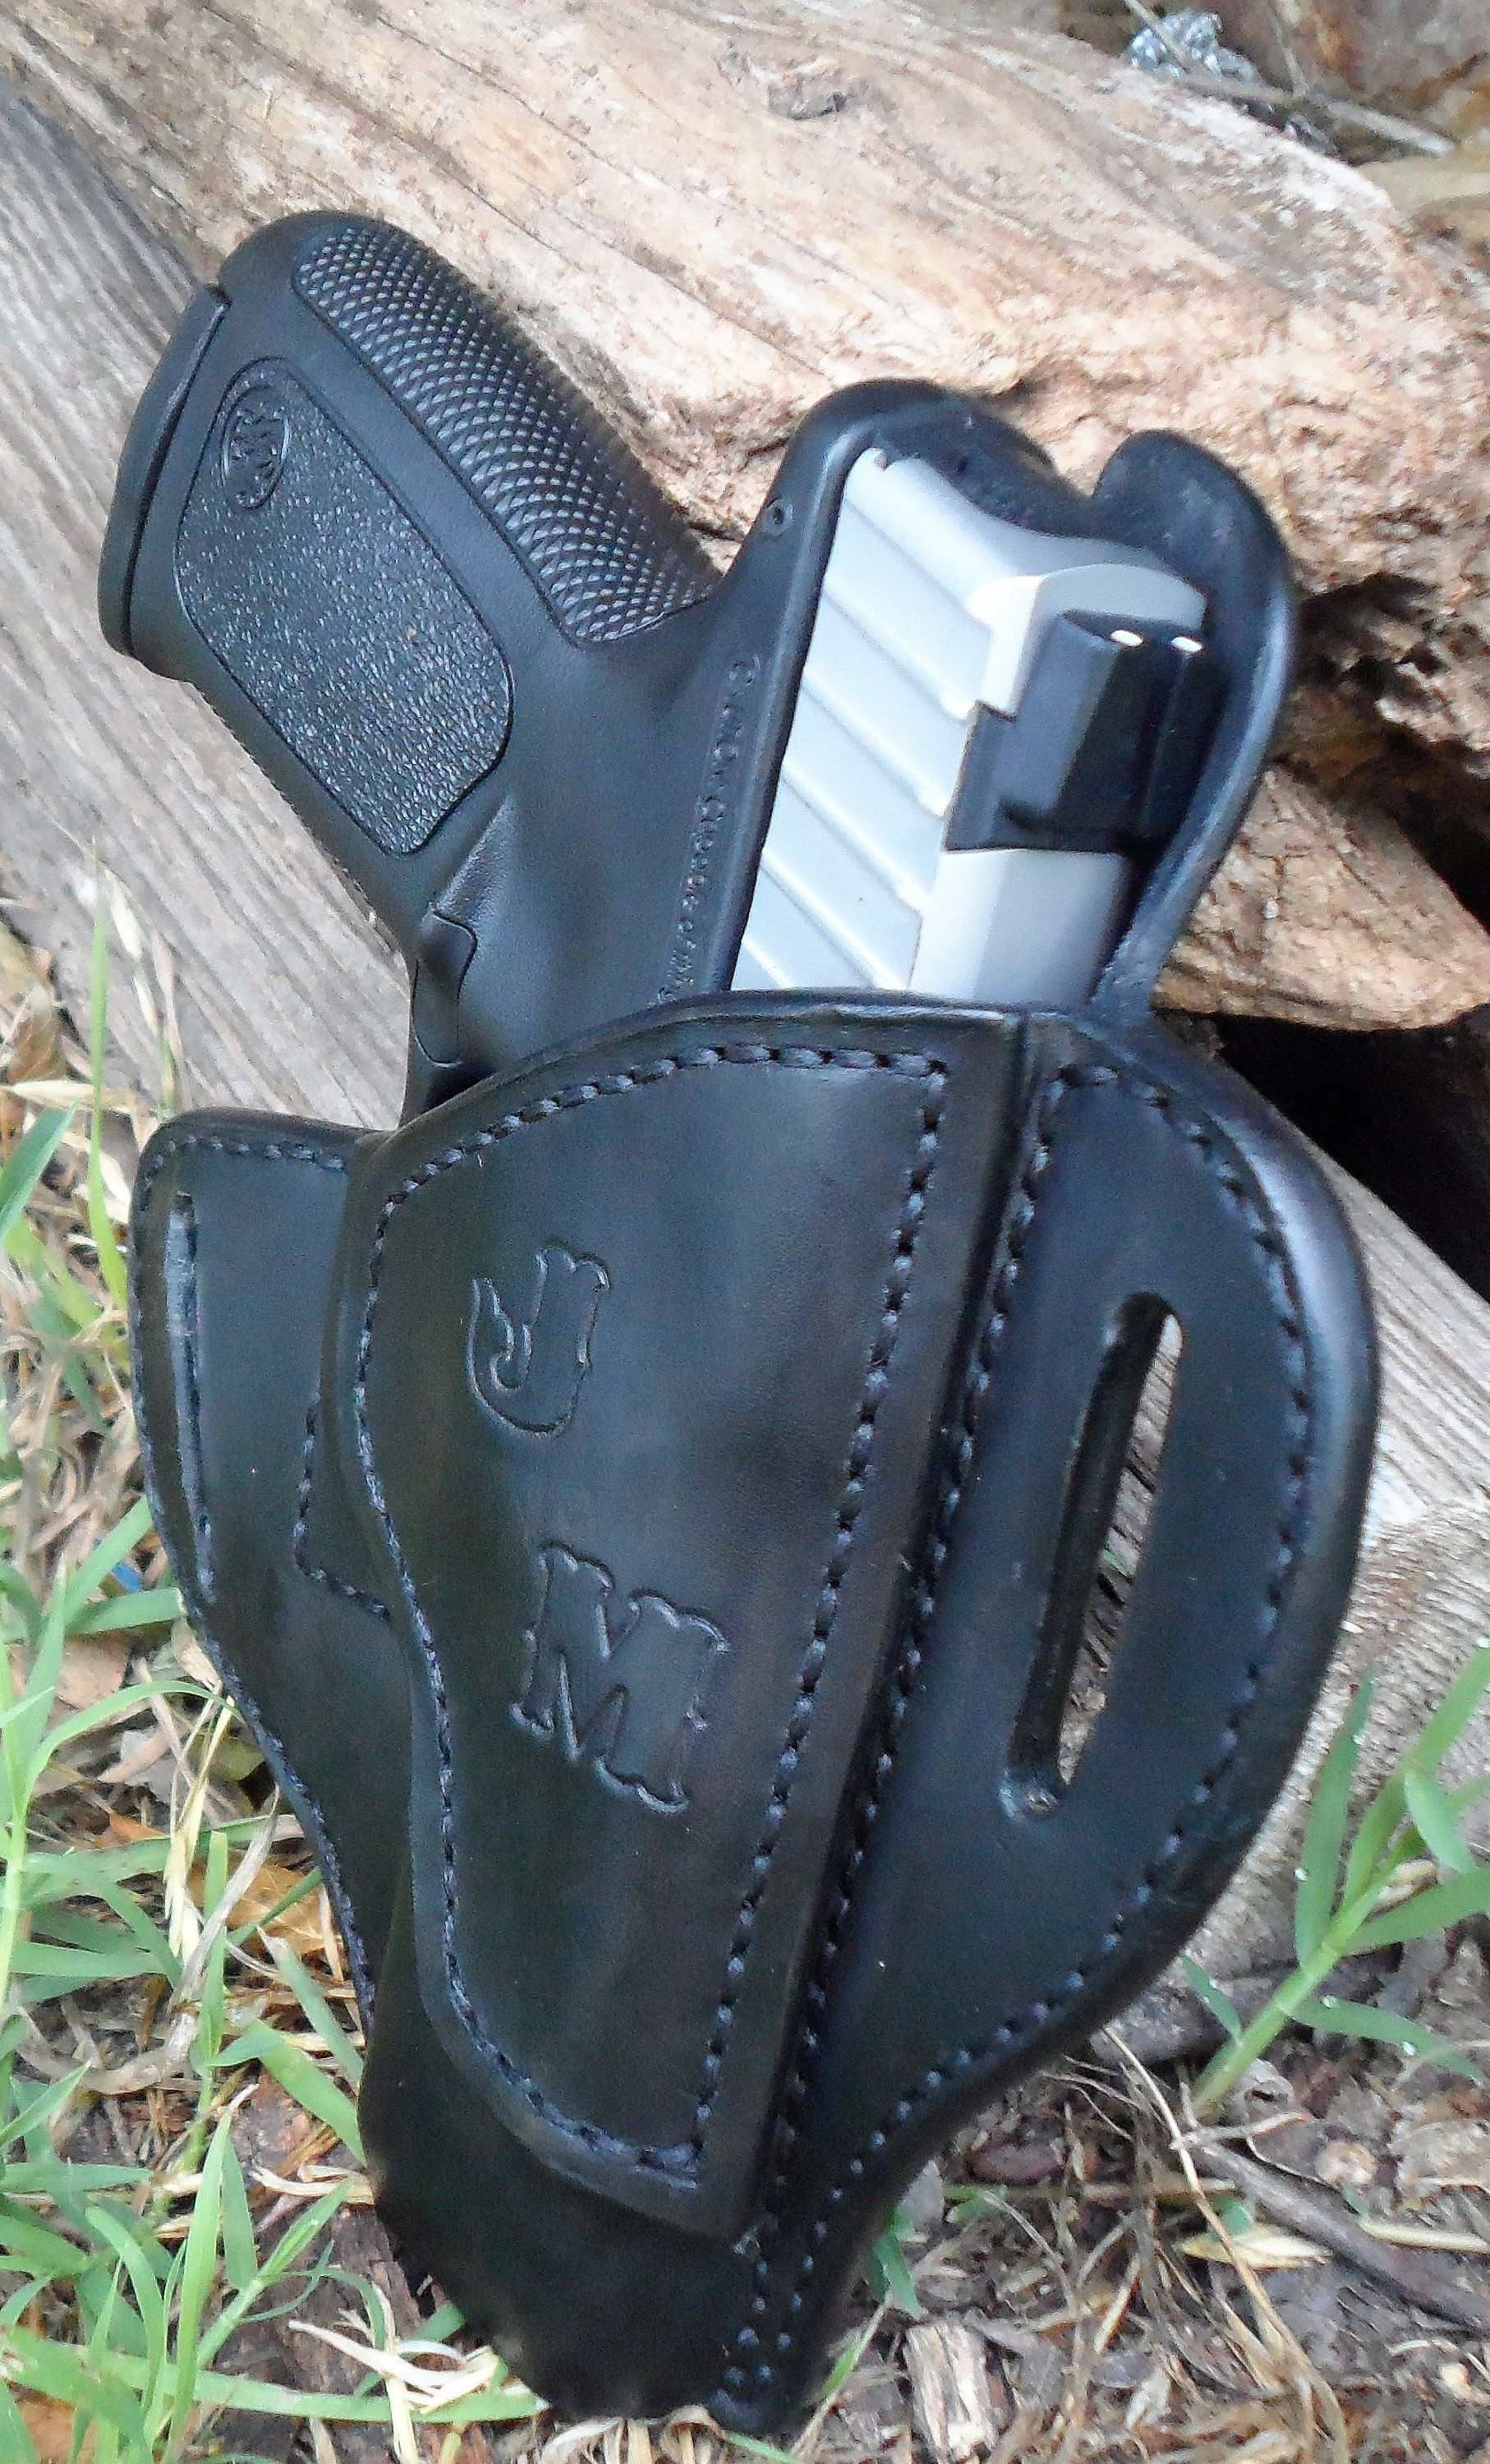 Smith & Wesson SDVE 9/40 cal saddle holster by AnchorsAwayLeather on